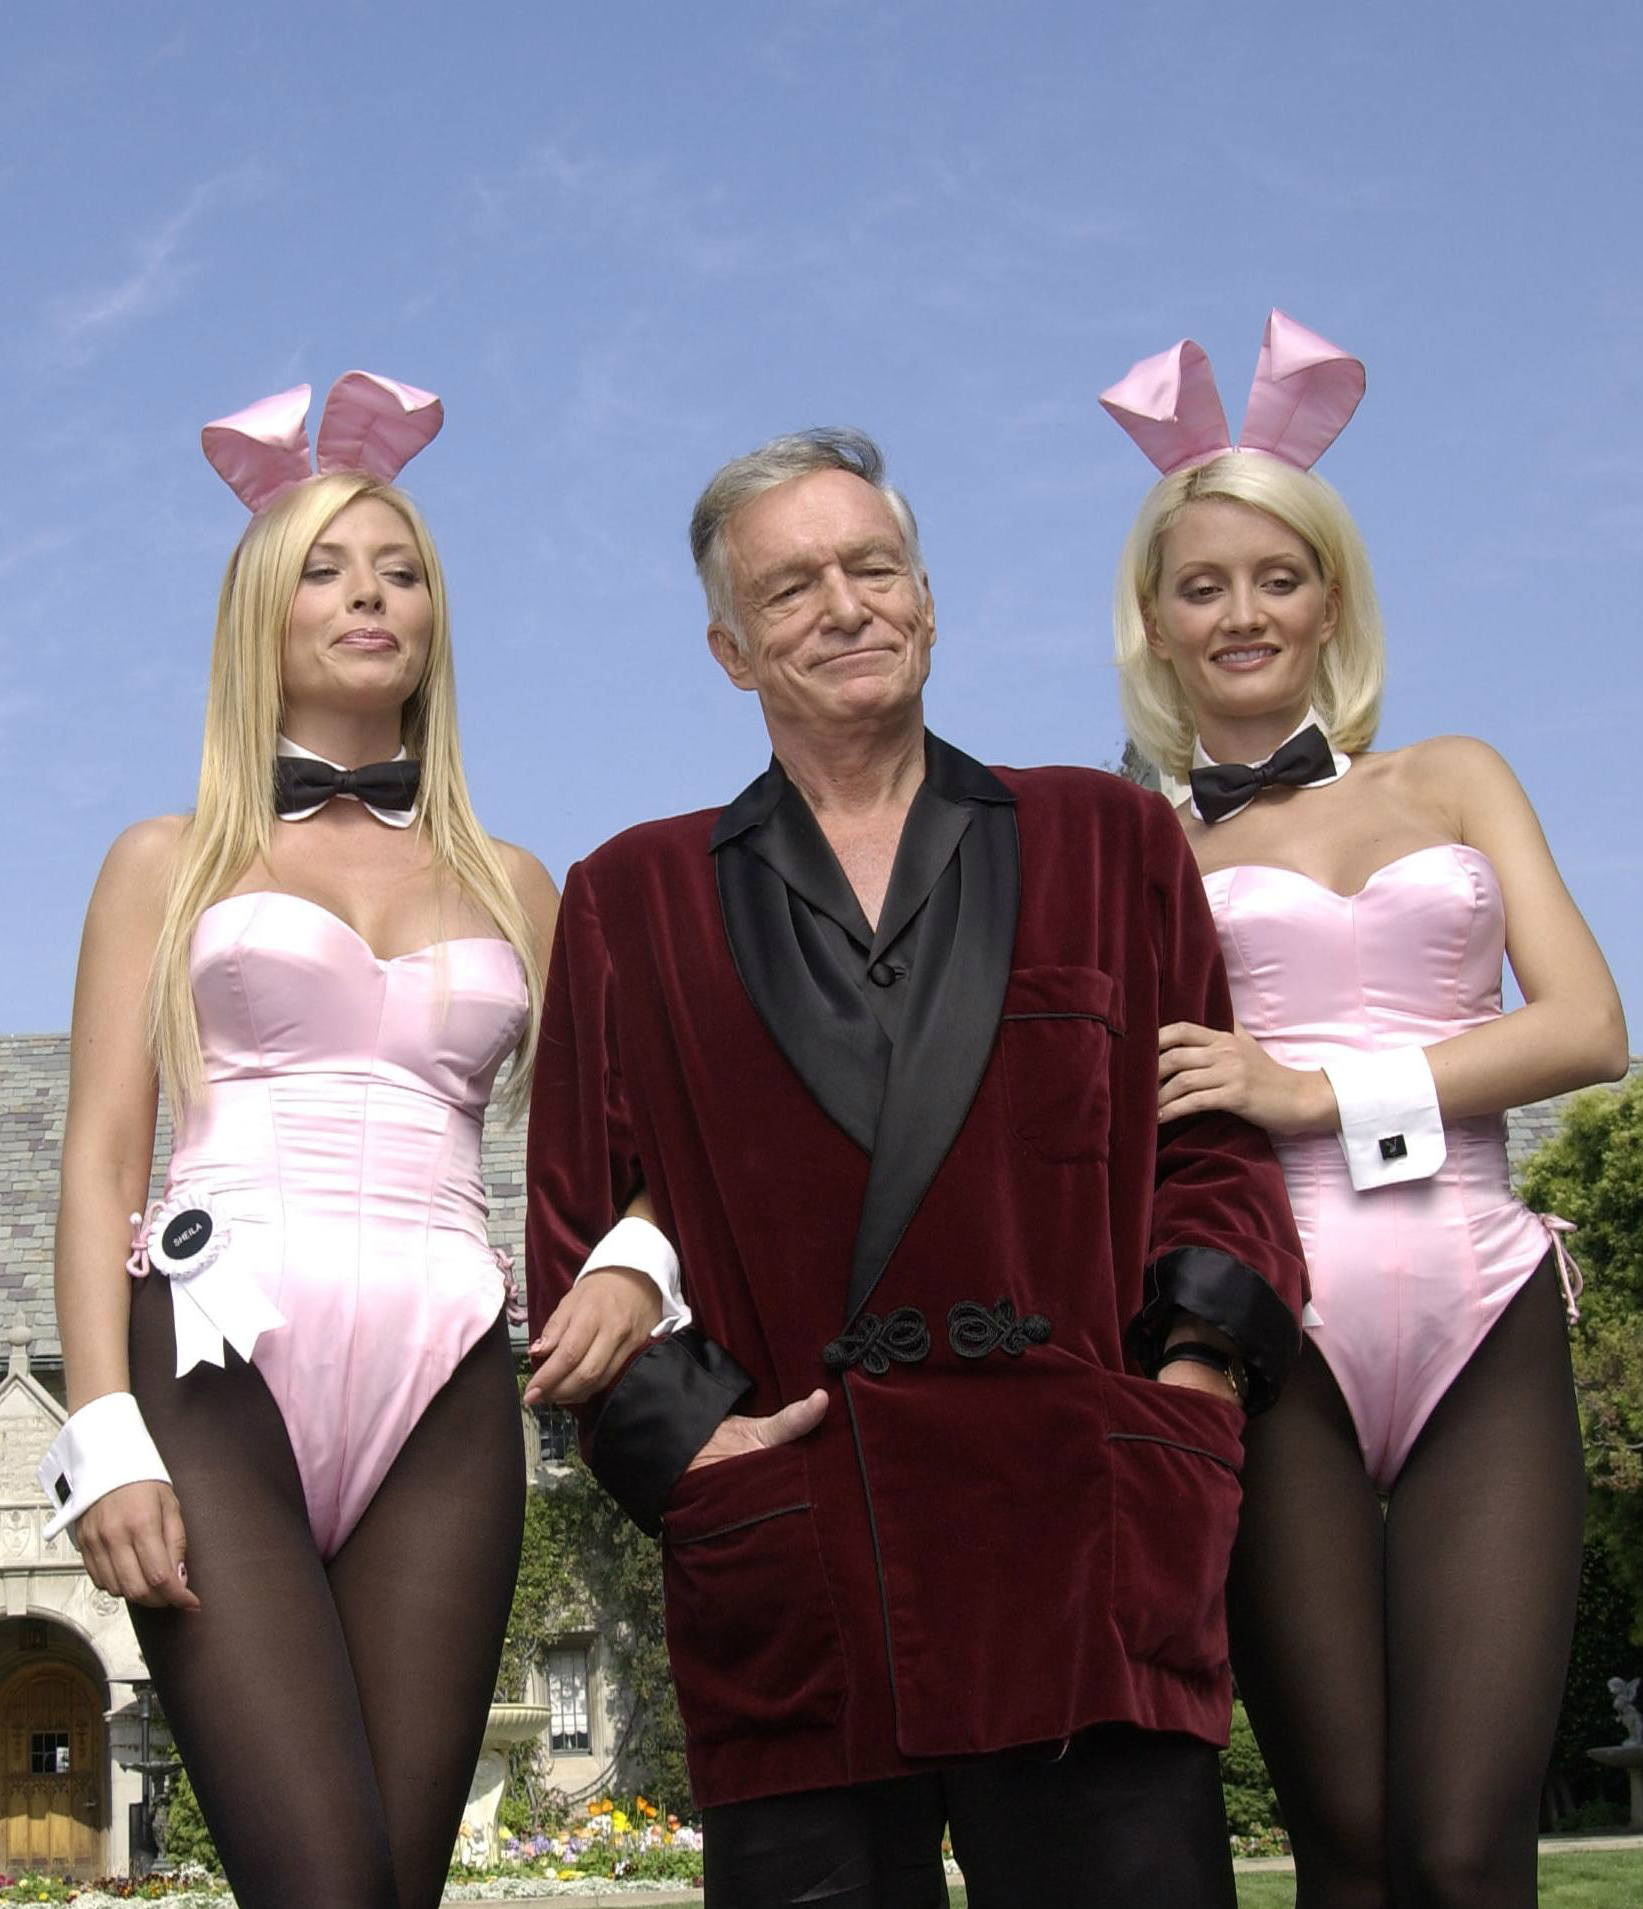 Hugh Hefner with two bunnies at the Playboy Mansion, 2003